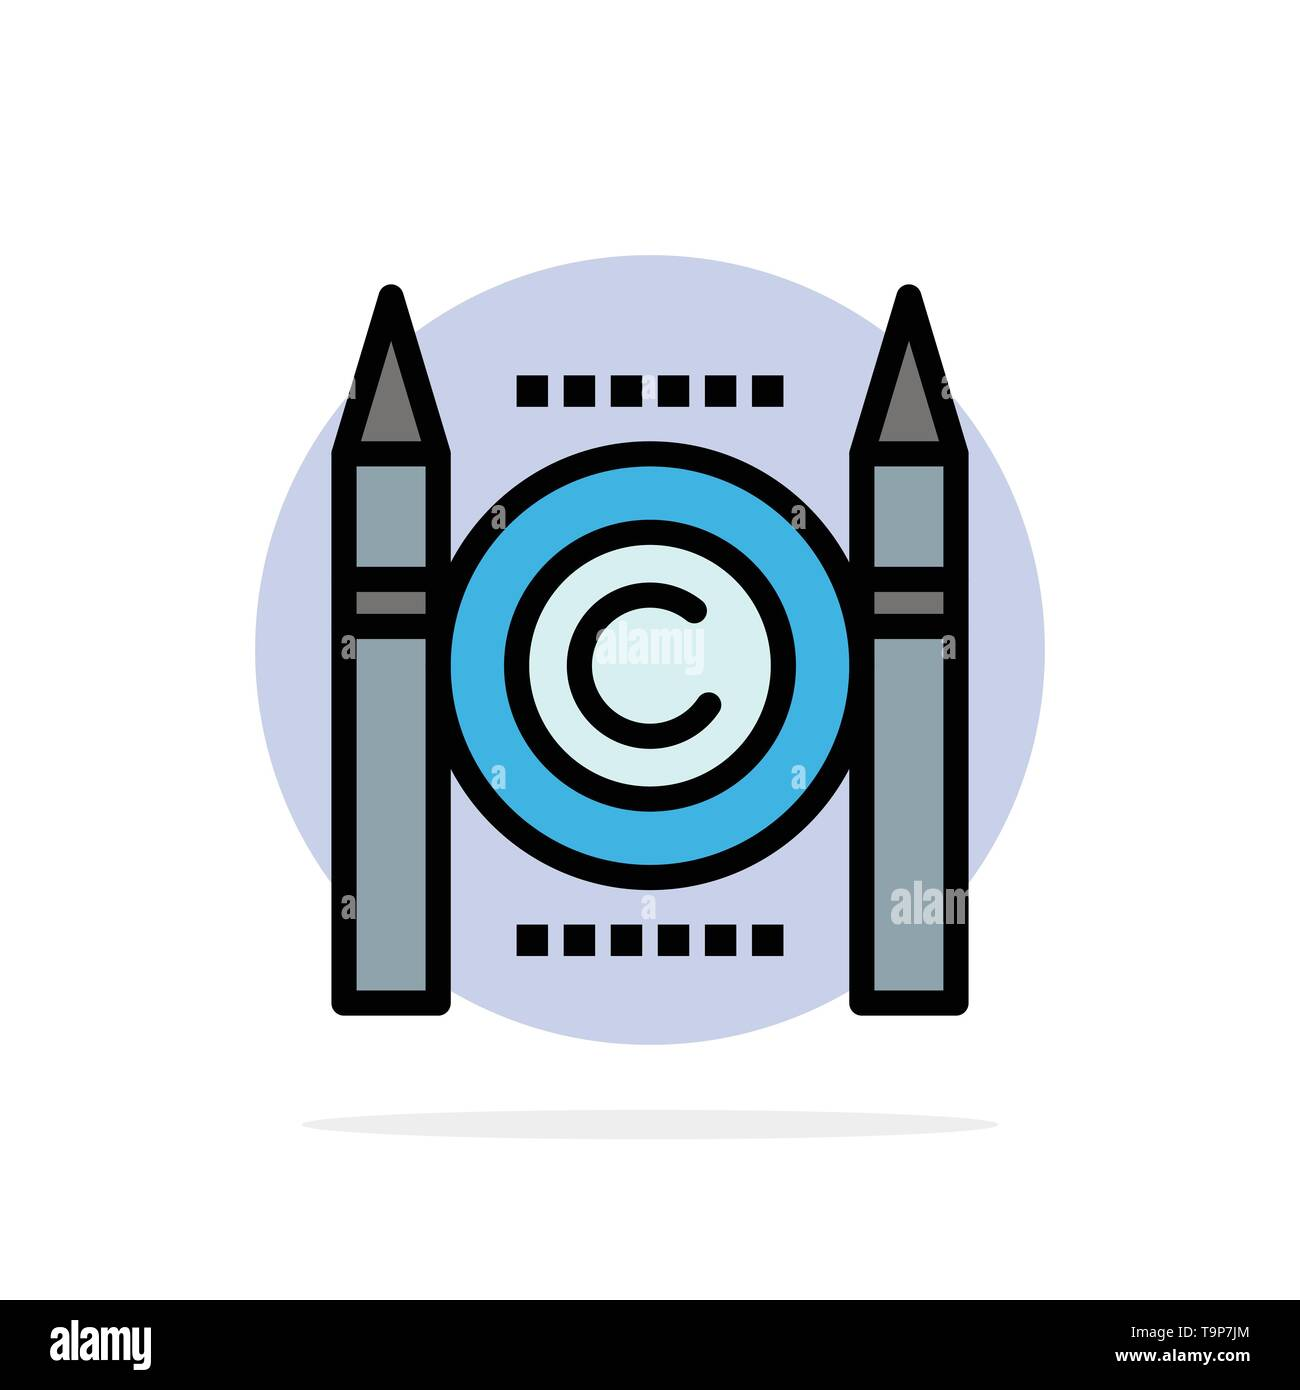 Business, Conflict, Copyright, Digital Abstract Circle Background Flat color Icon - Stock Image